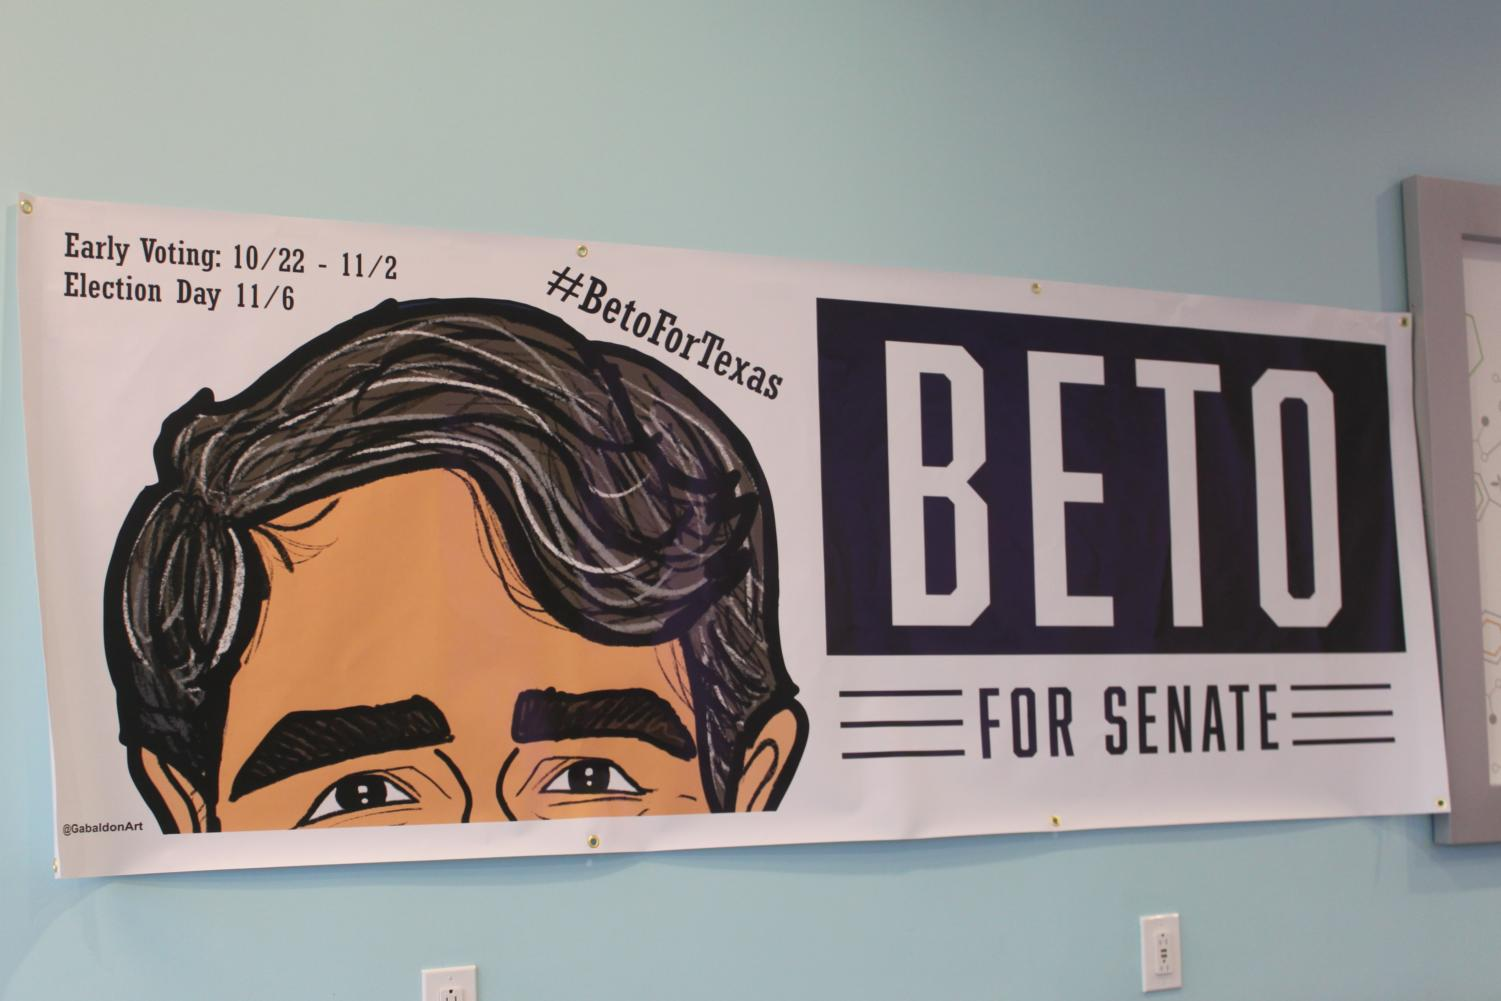 A Get Out The Vote poster shows off O'Rourke's campaign in TCBY, a local frozen yogurt shop and Beto Pop-Up office. Volunteers come here to collect materials, get trained, and call voters to provide them with information about when and how to vote, along with reminders to go to the polls during Early Voting and on Election Day.